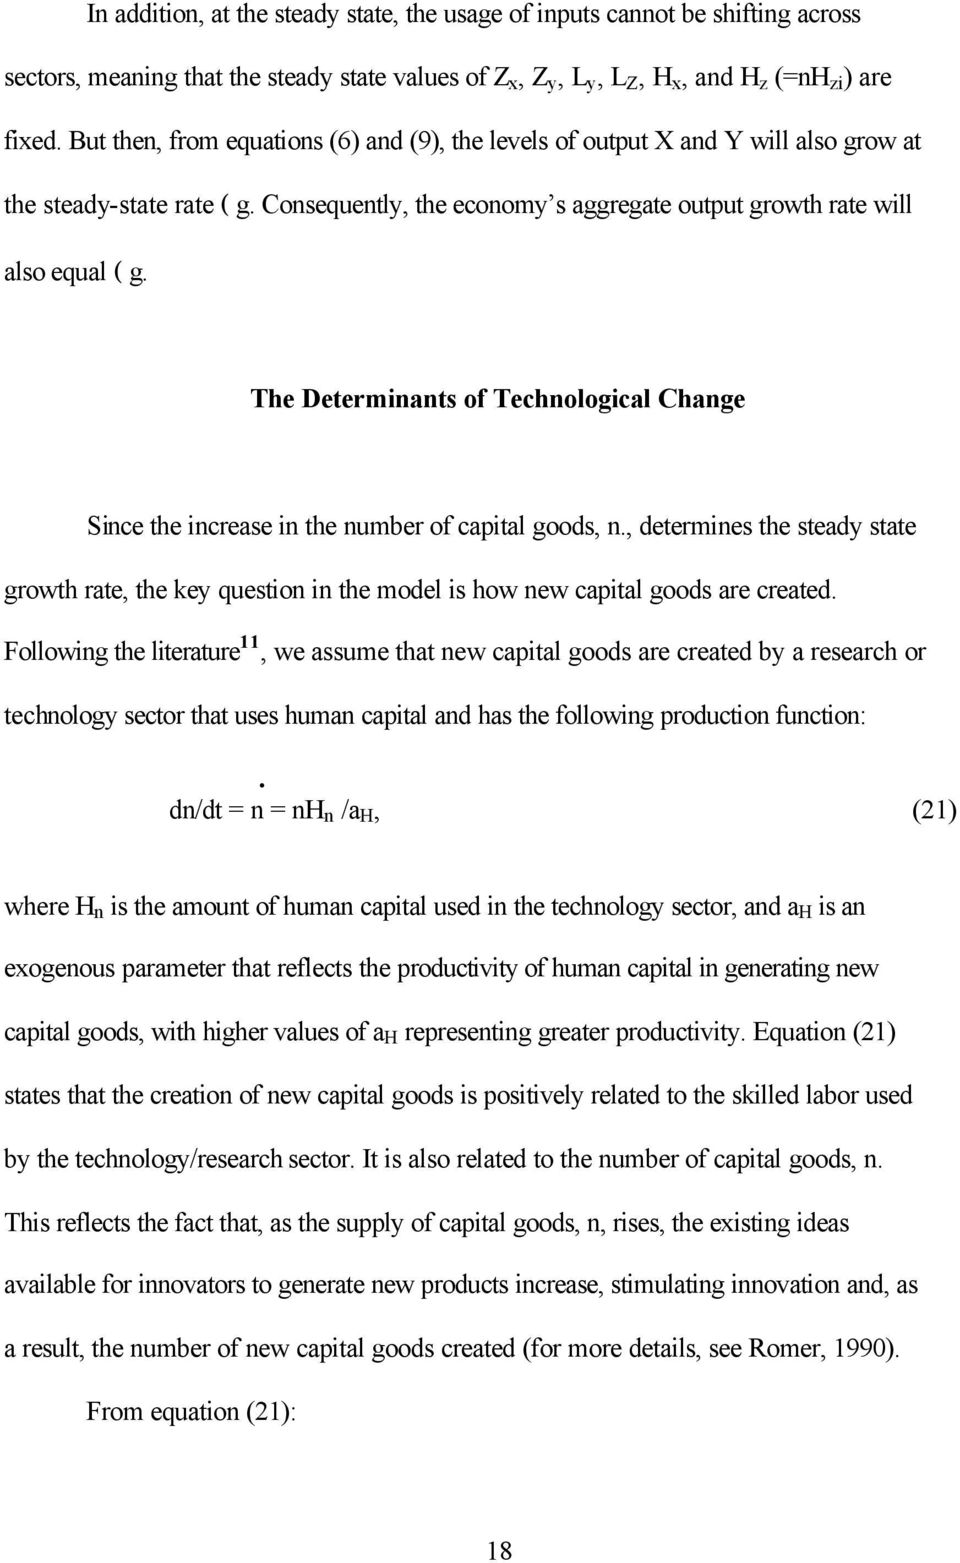 The Determinants of Technological Change Since the increase in the number of capital goods, n.